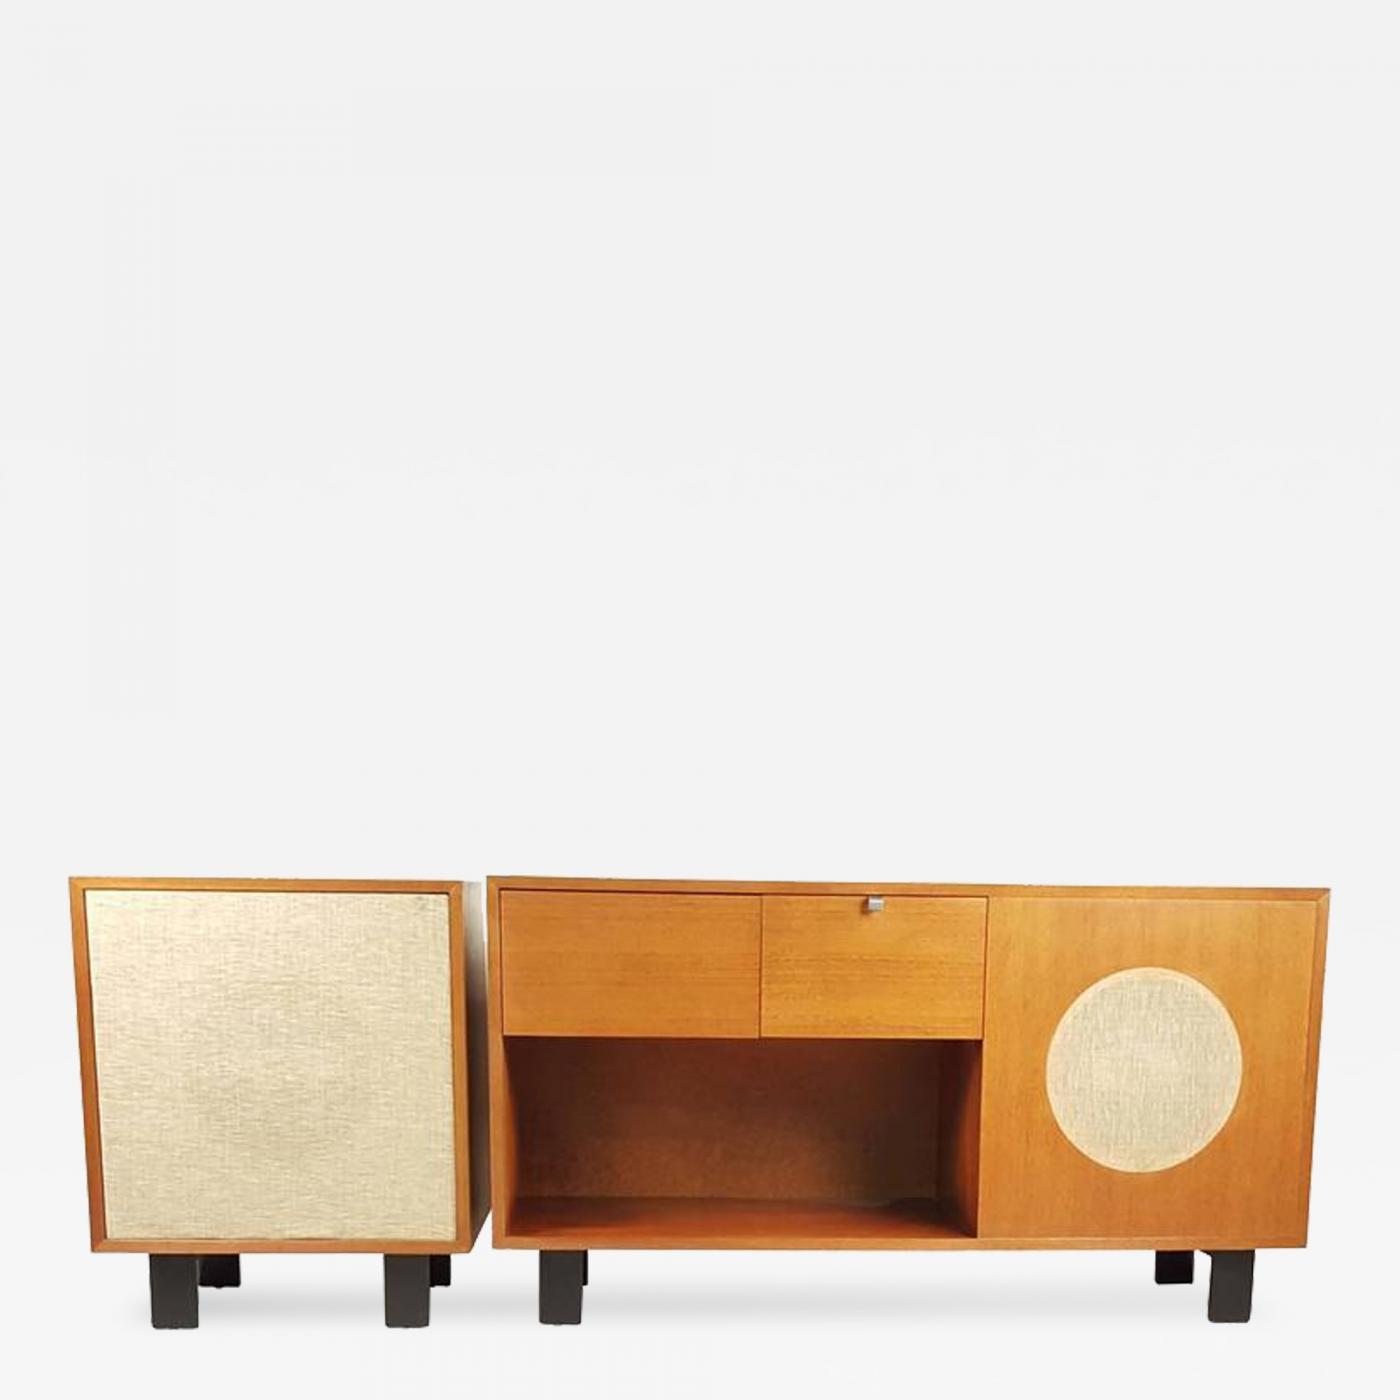 living room furniture dallas tx christmas decorations ideas george nelson - stereo cabinet for herman miller